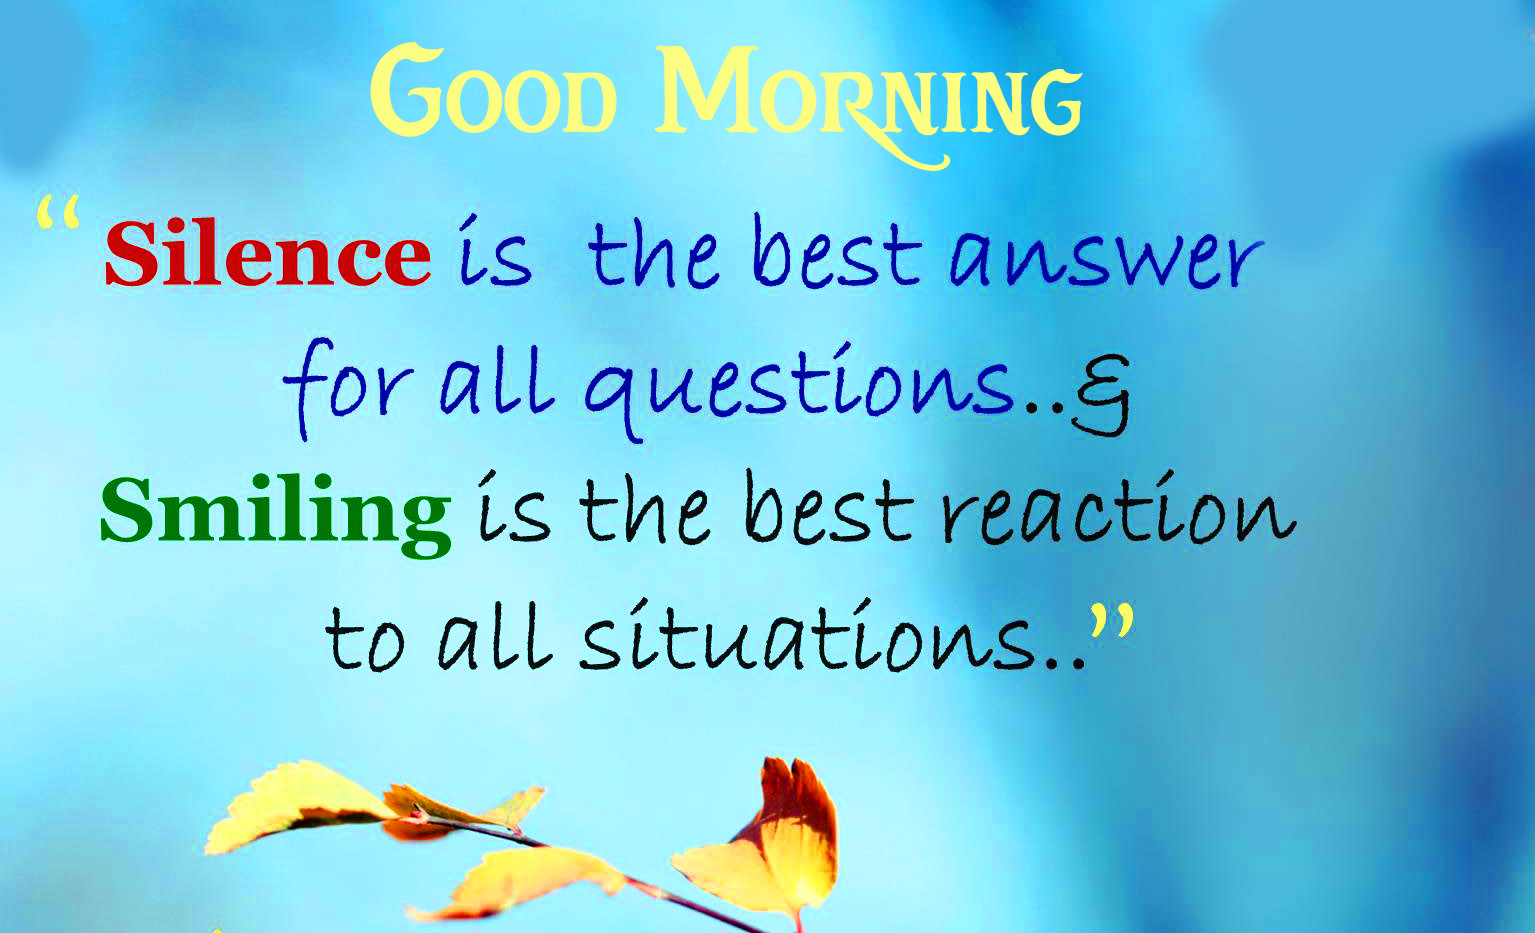 Good Morning with Very Beautiful Quotes